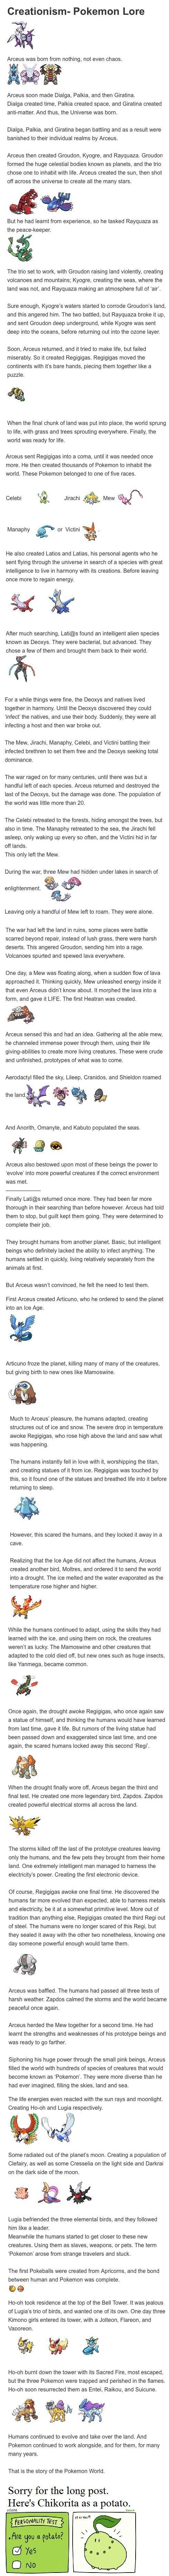 The history of the Pokémon world